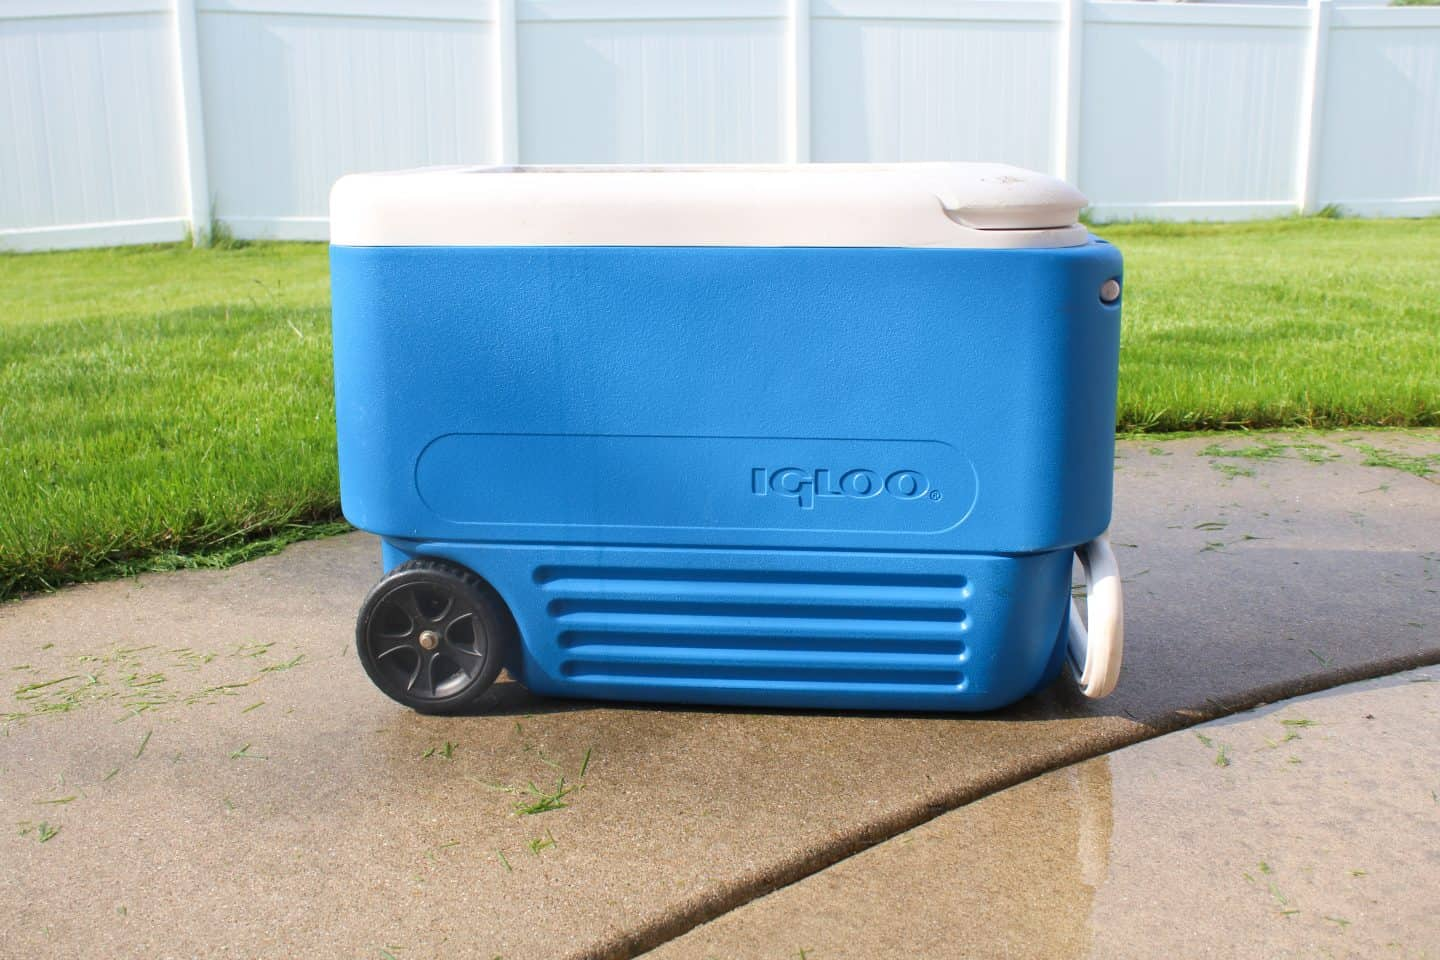 Beat the heat this summer by turning a cooler into a portable water table. Intended for older children add water and they can splash around and have lots of fun #watertable #momhack #preschooler